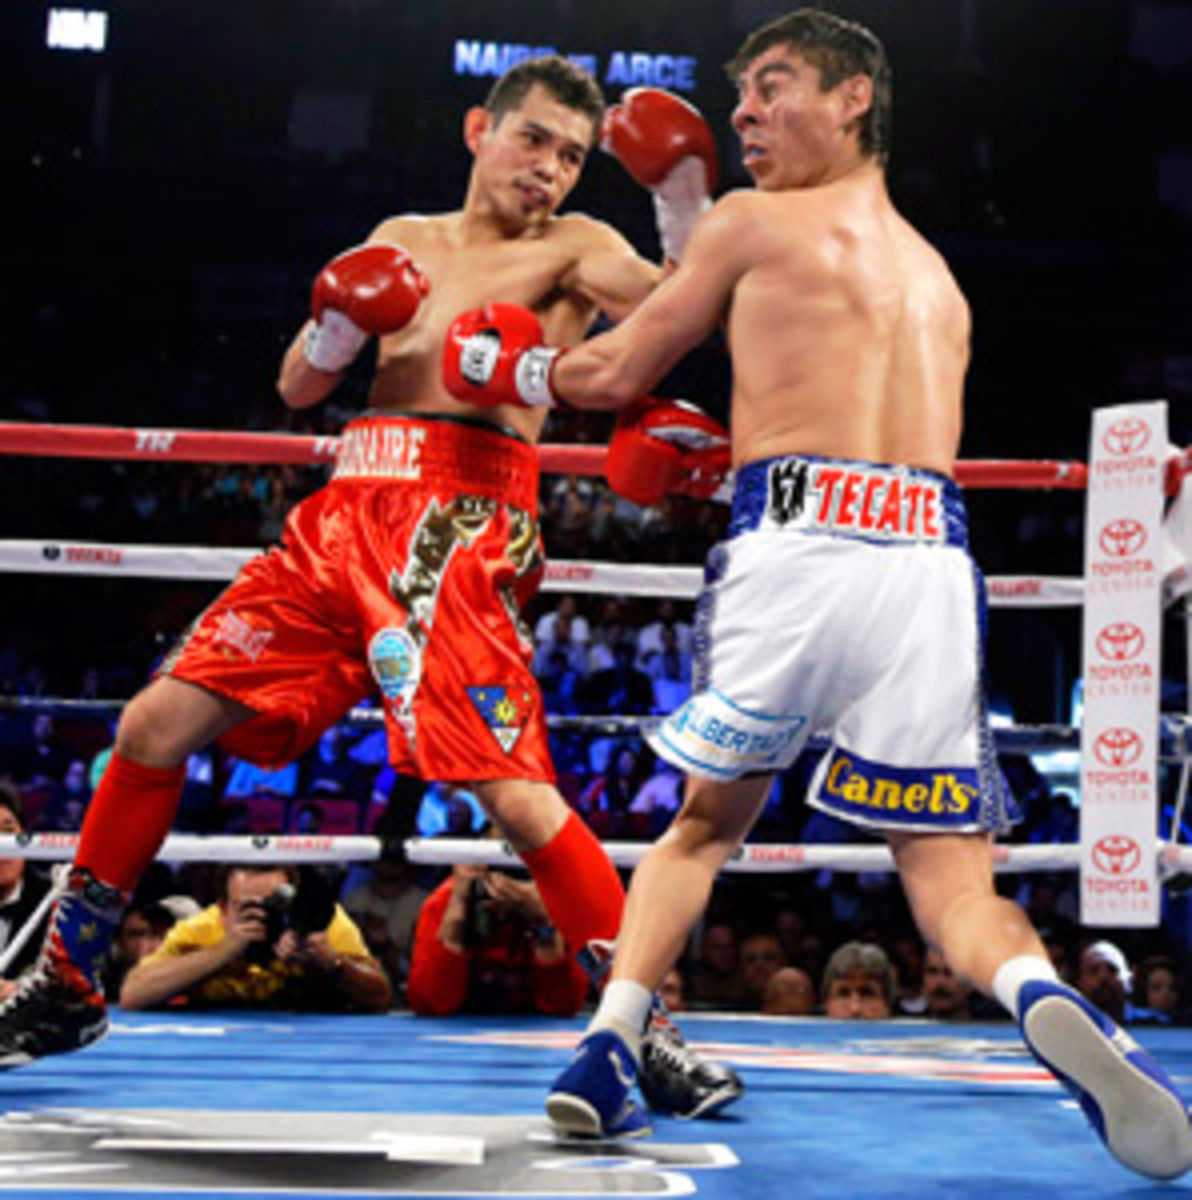 Nonito Donaire (left) scored his 20th career knockout against Jorge Arce.